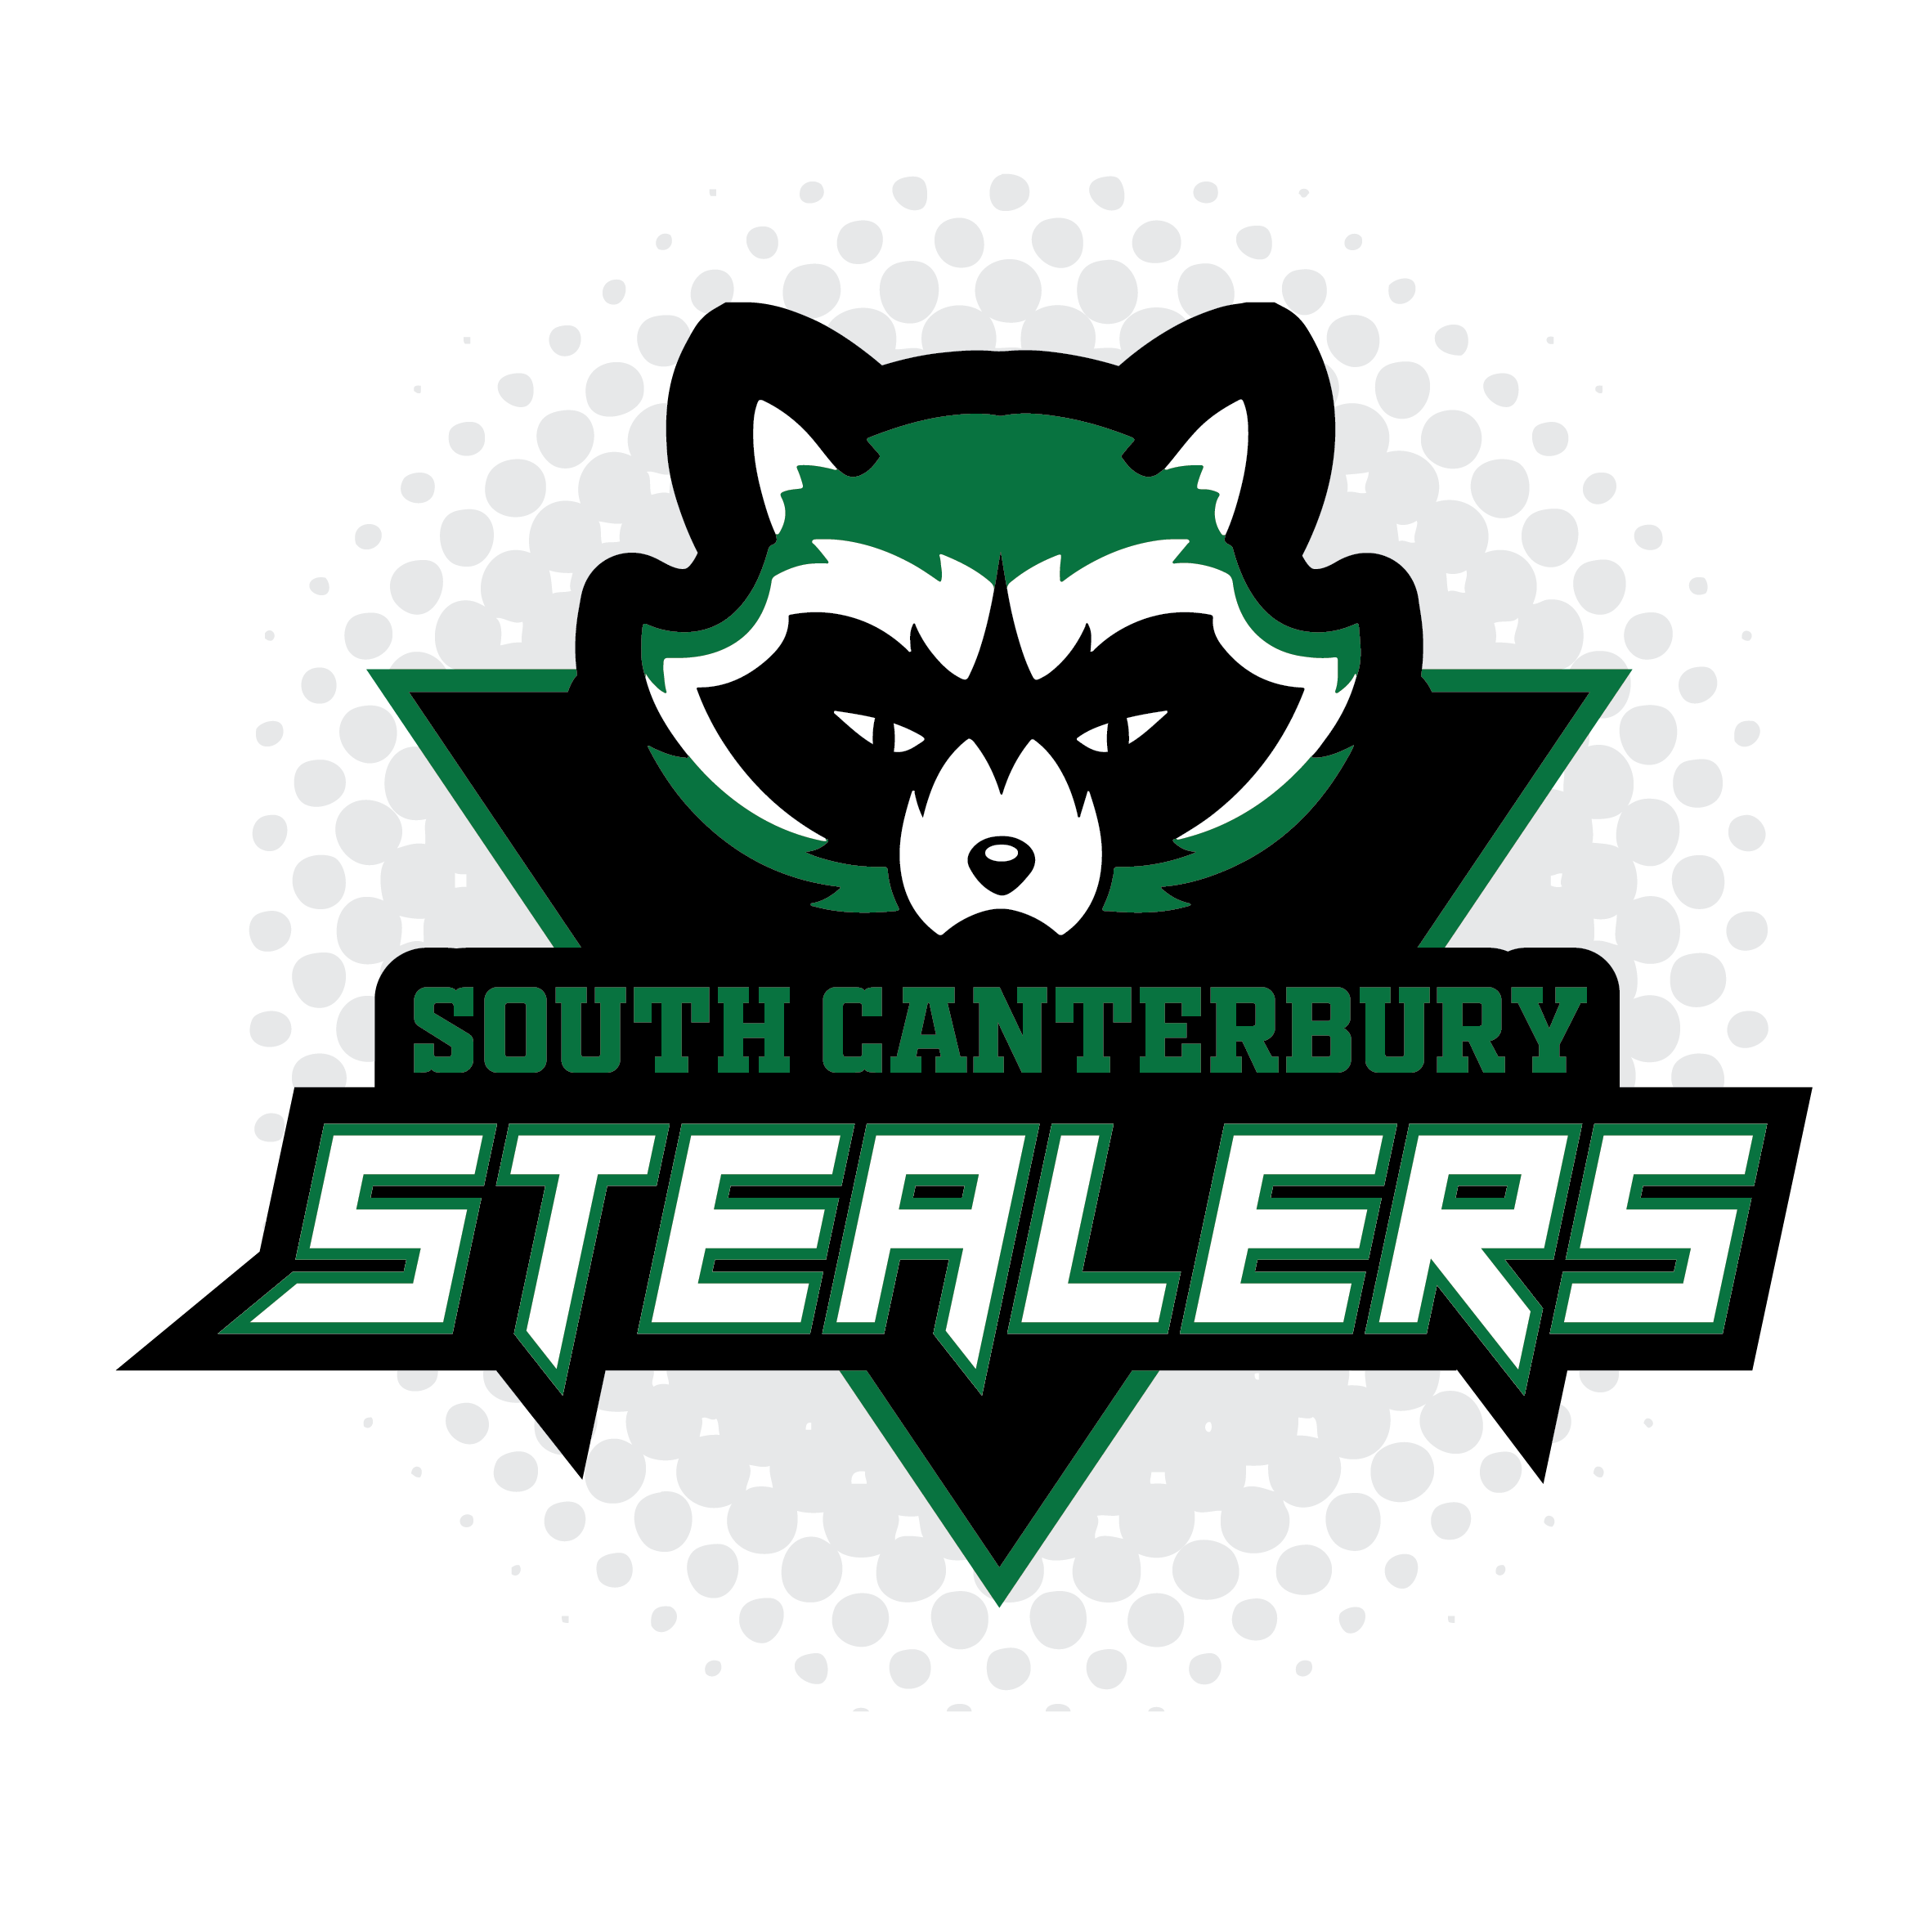 Announcing - the South Canterbury Stealers